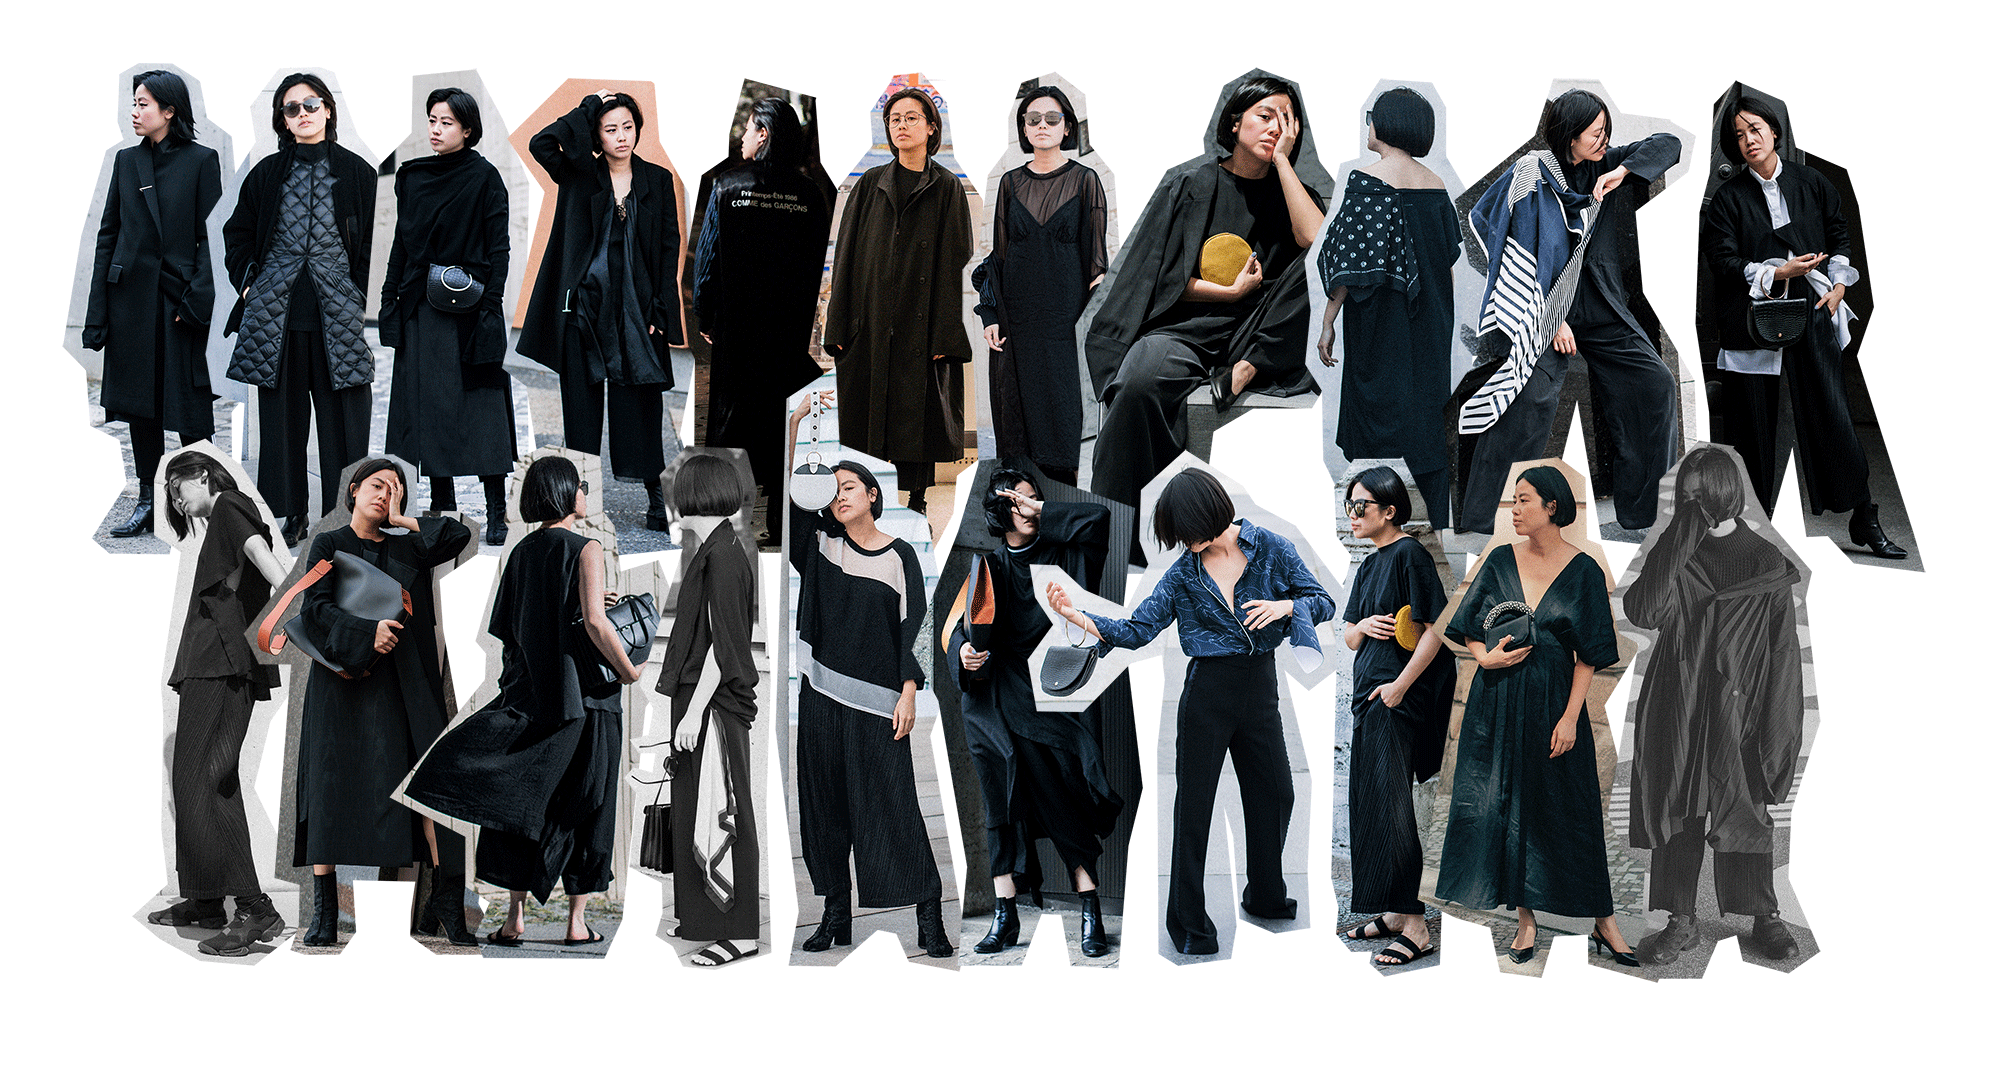 Looks of 2017 - All Black Everyhing by Alice M. Huynh / iHeartAlice.com - Travel & Lifestyleblog